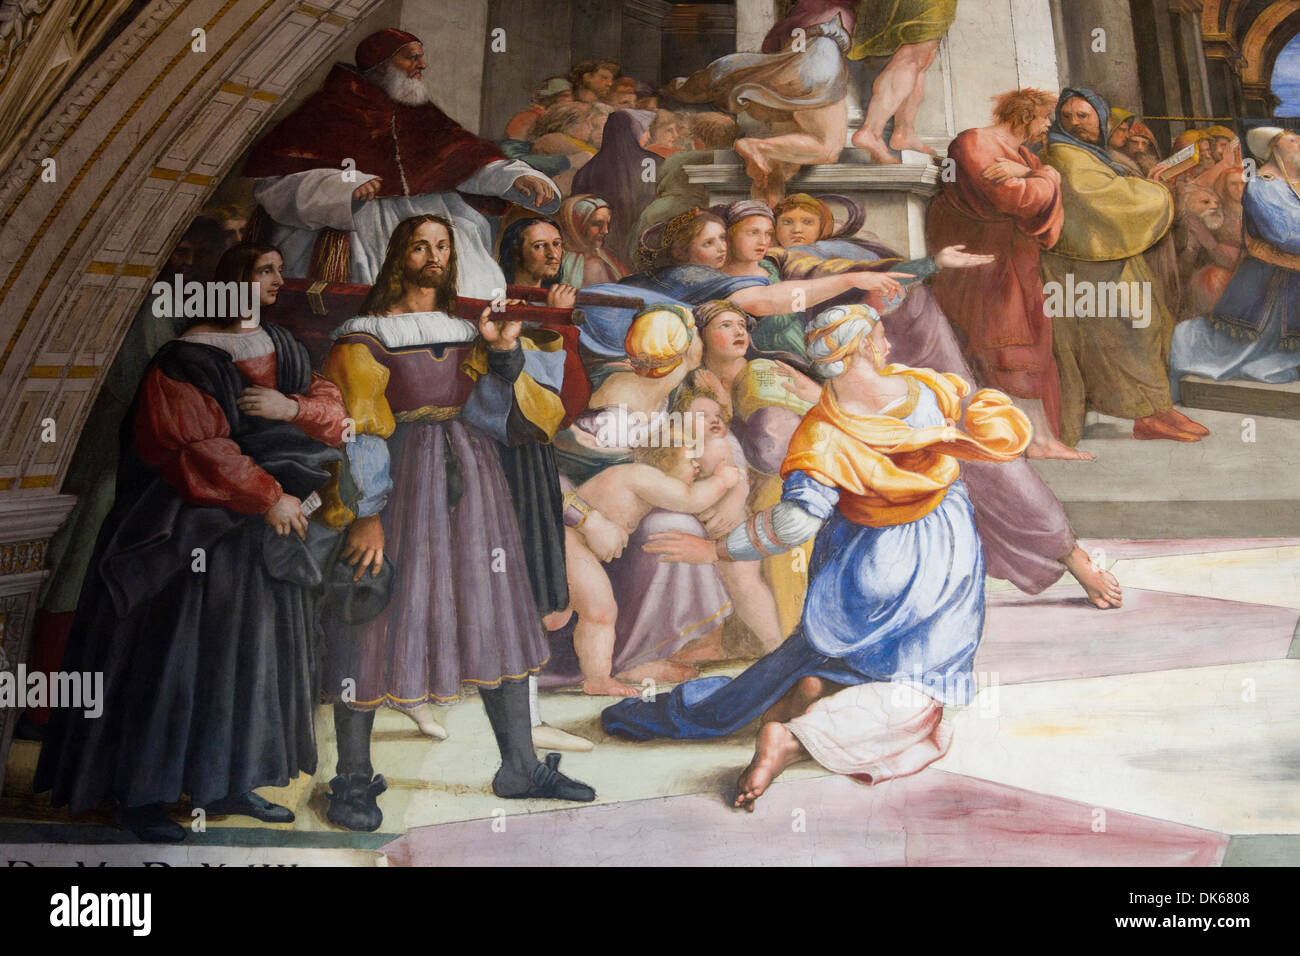 Detail from The Expulsion of Heliodorus from the Temple, a fresco designed and painted by Raphael (Raffaello Sanzio Stock Photo